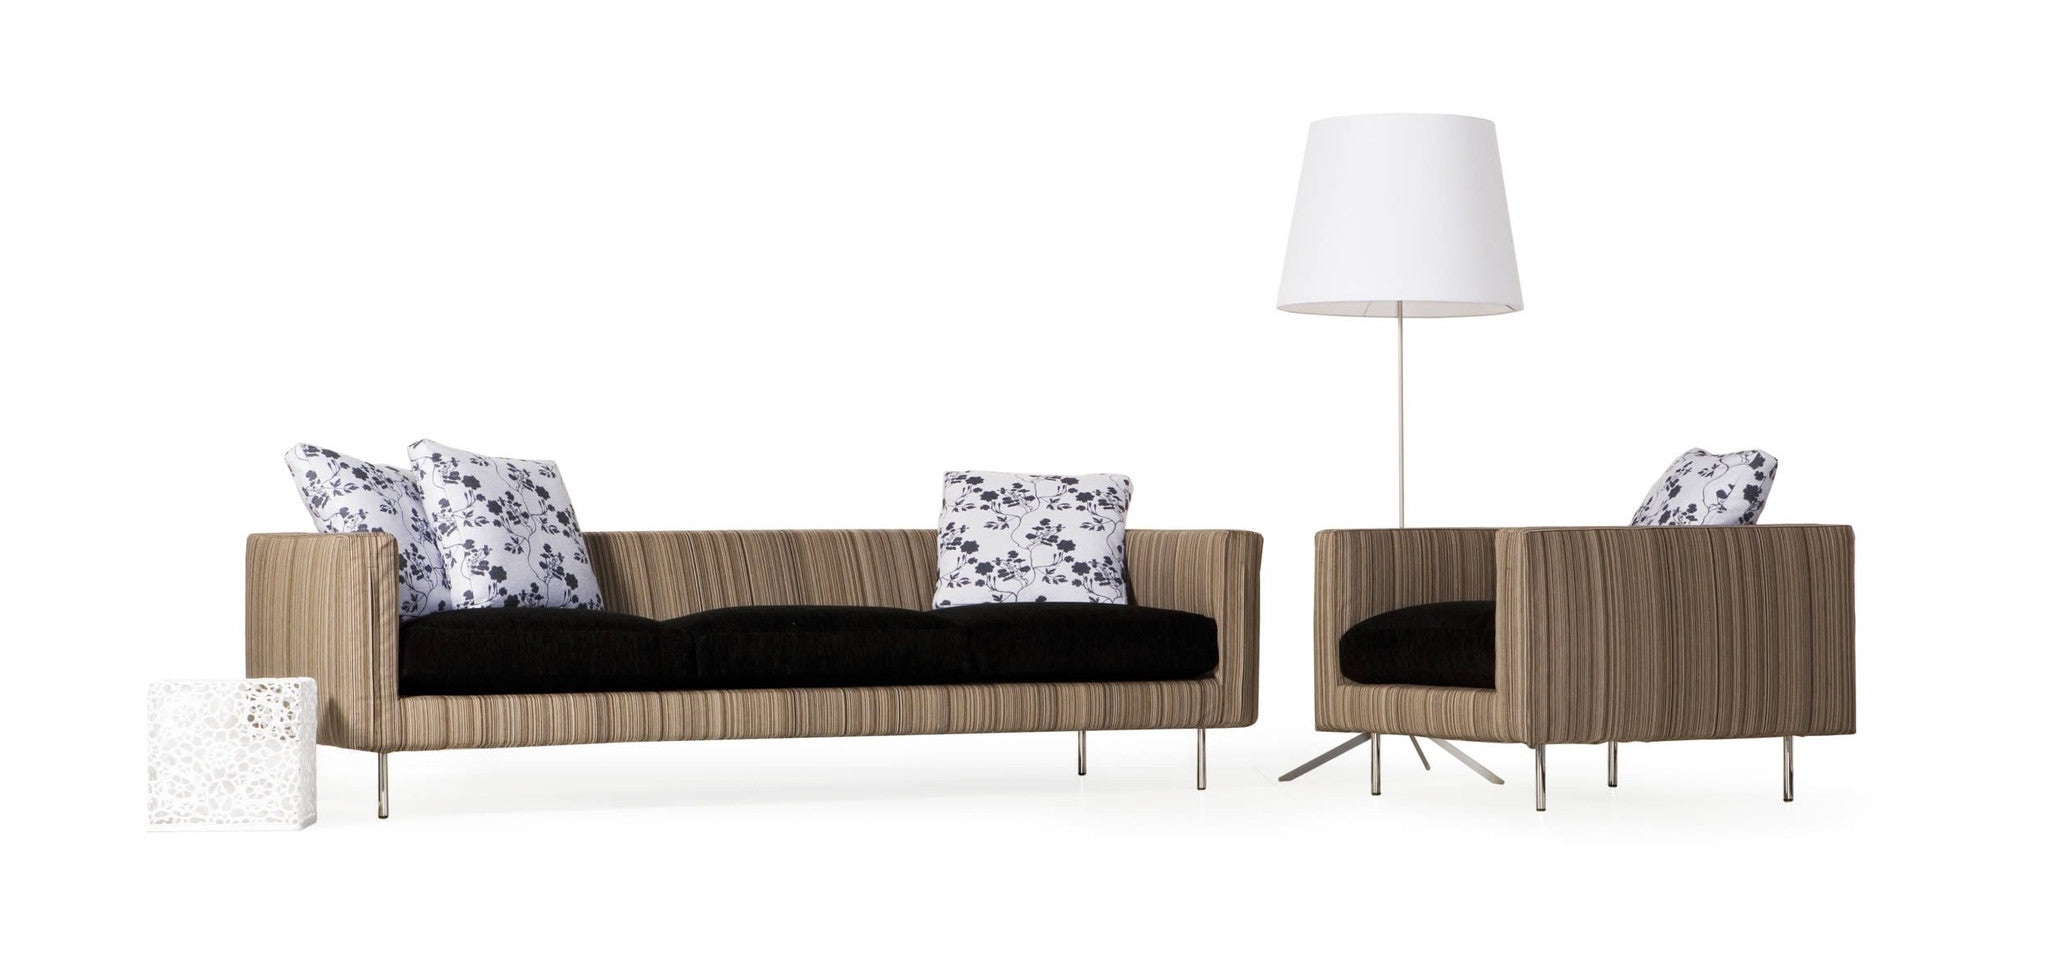 BOUTIQUE MANGA DOUBLE SEATER - Fine Bone Luxury Living